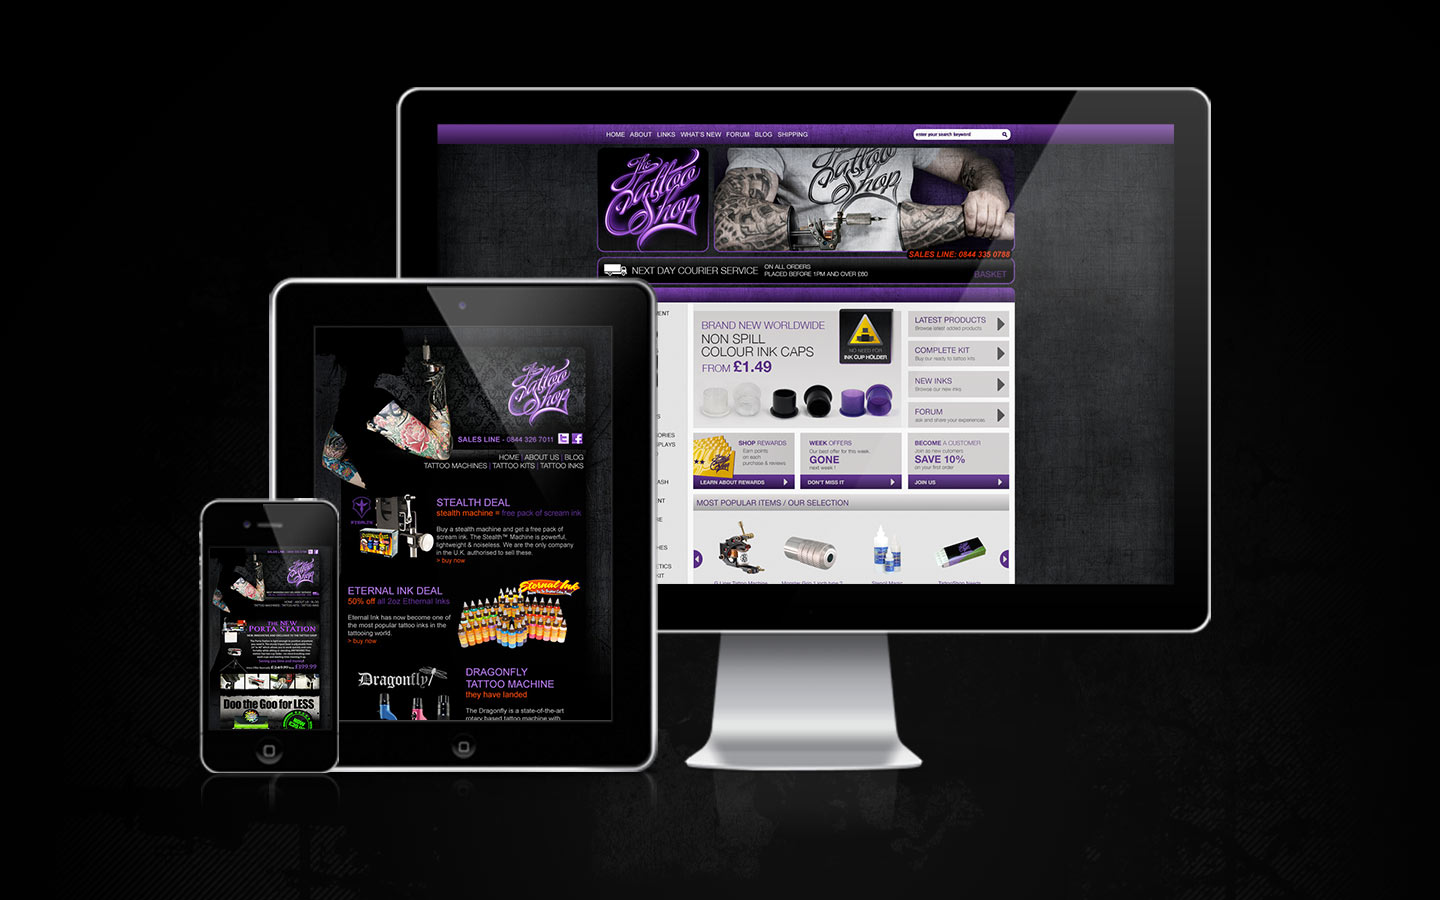 The tattoo shop digital art flyers ads catalogue for Tattoo nightmares shop website